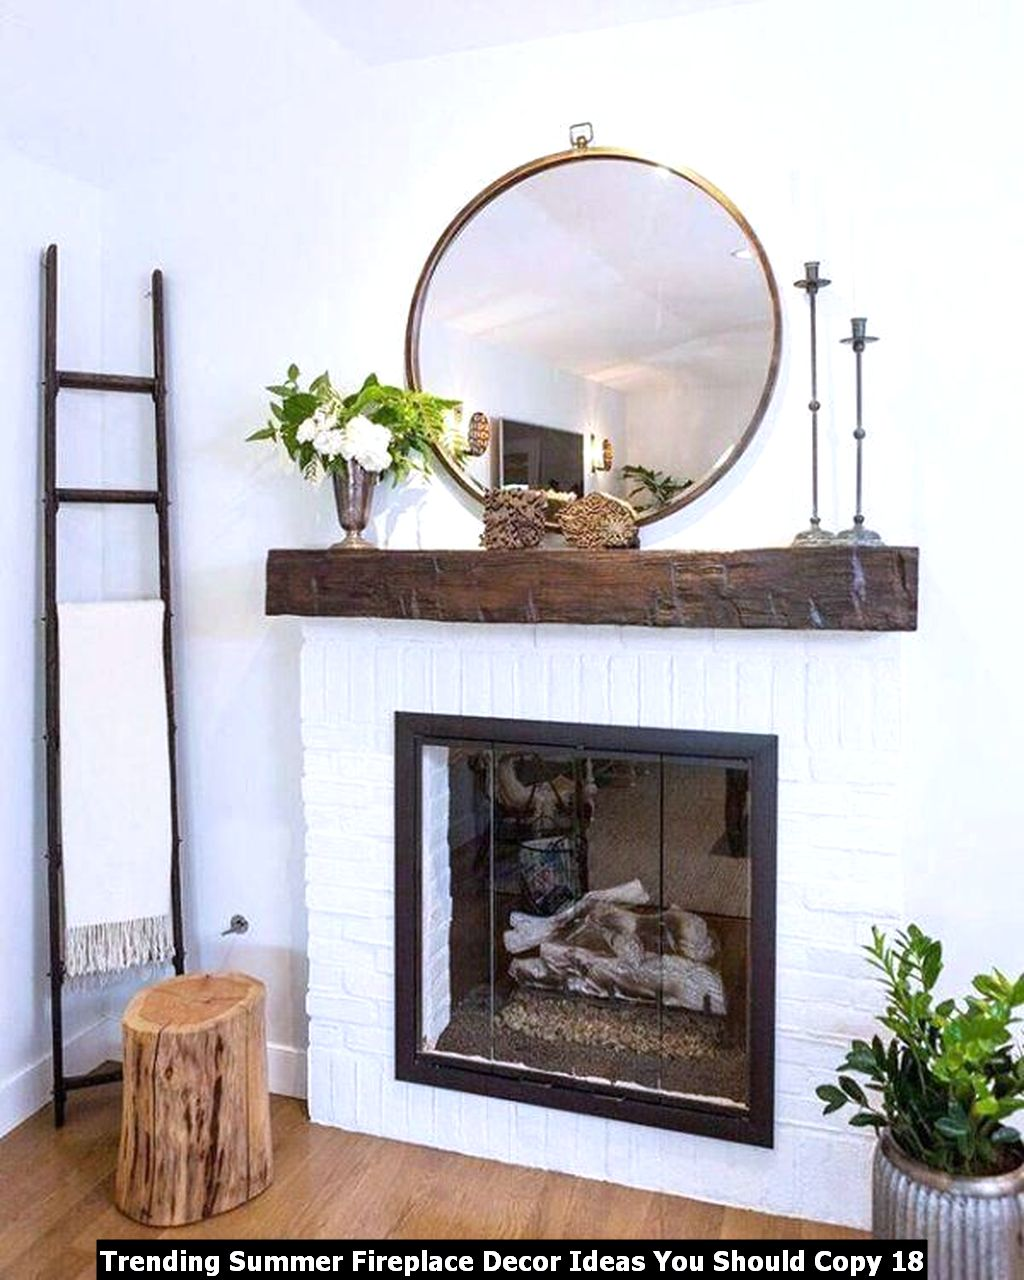 Trending Summer Fireplace Decor Ideas You Should Copy 18